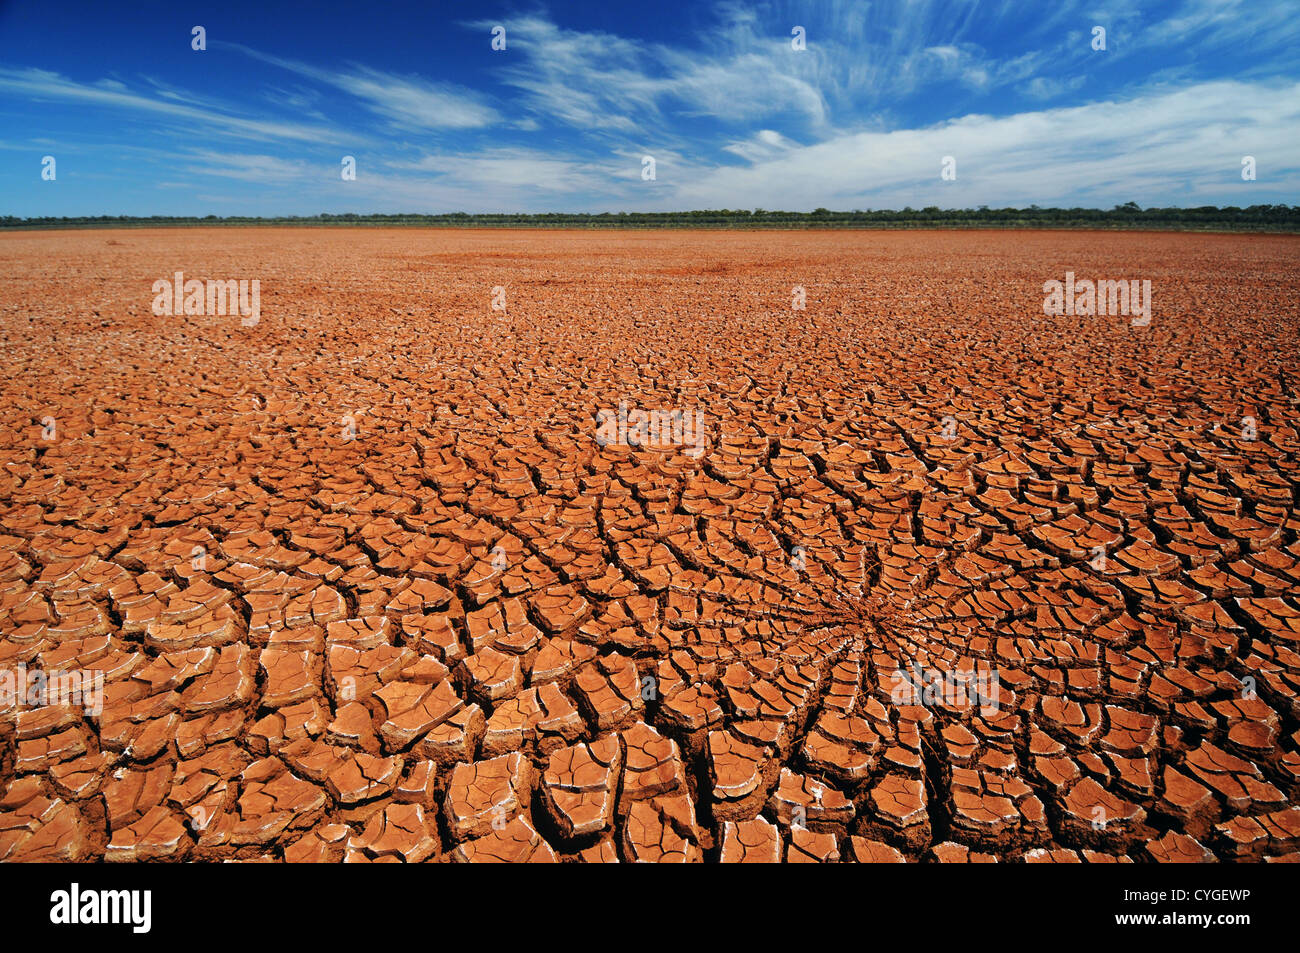 cracked-mud-on-dry-lakebed-of-rowles-lagoon-credo-station-western-CYGEWP.jpg